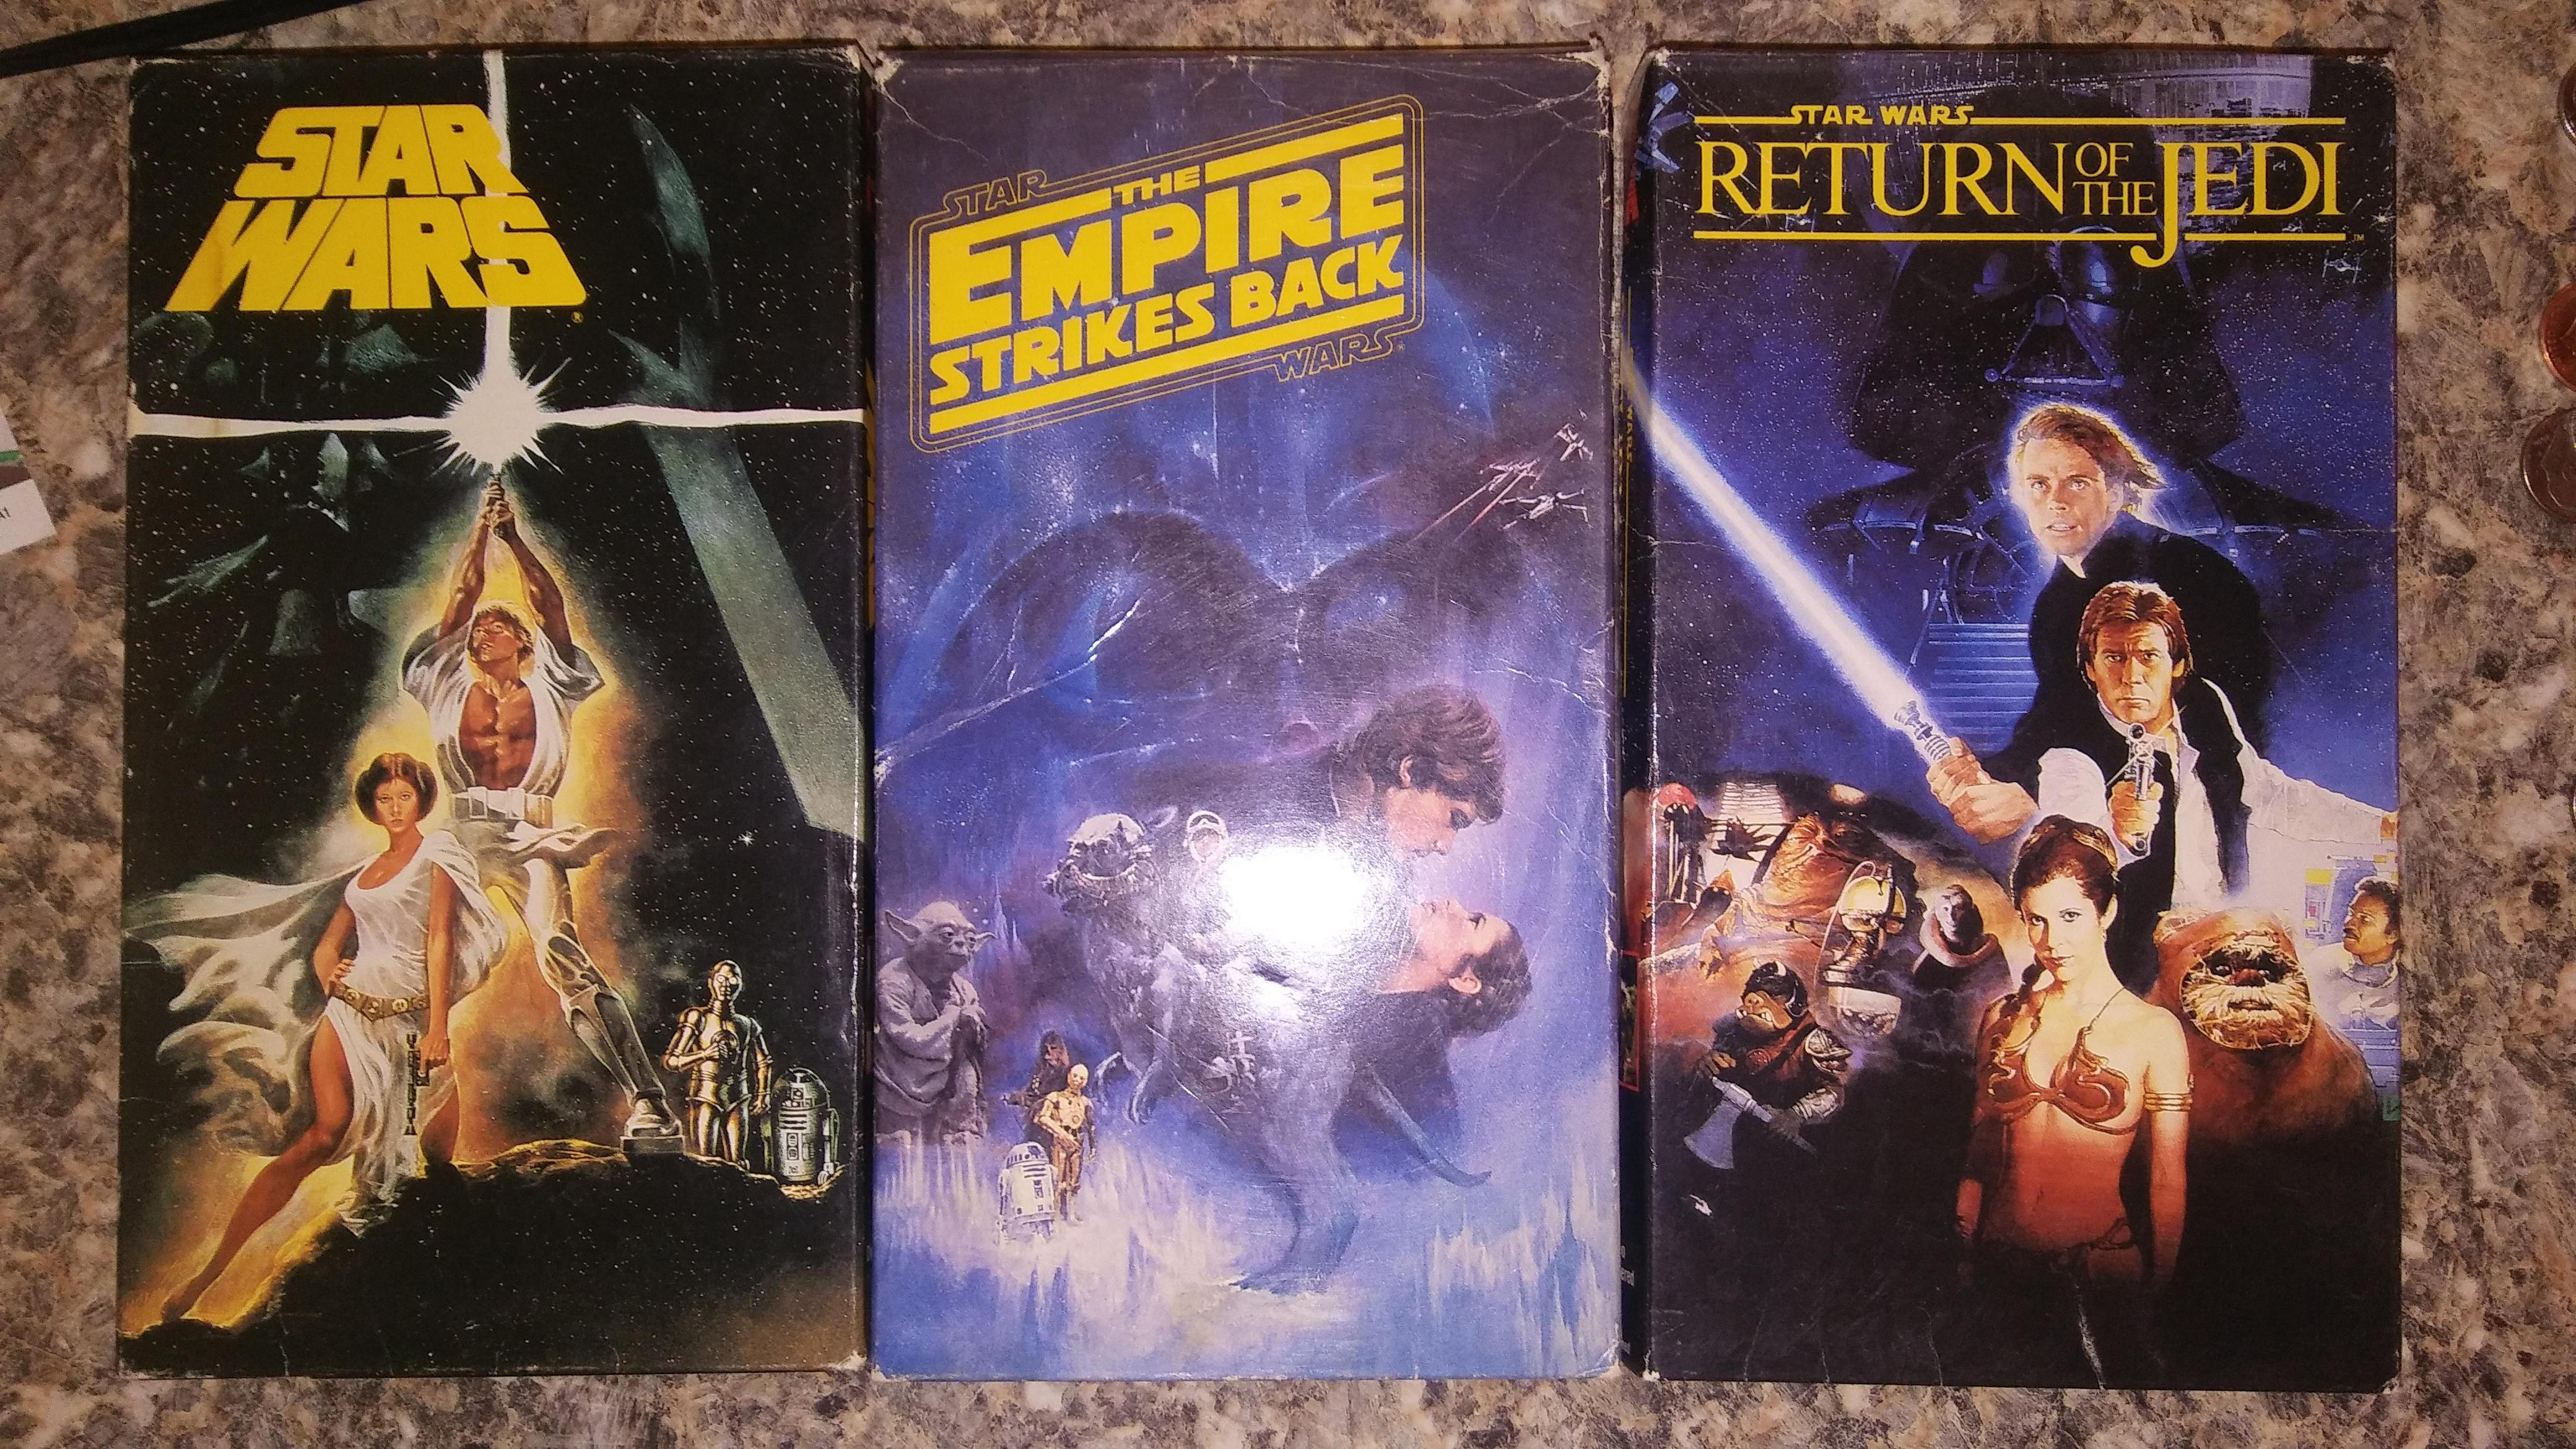 My father was getting rid of his VHS collection - I only wanted 3 movies.